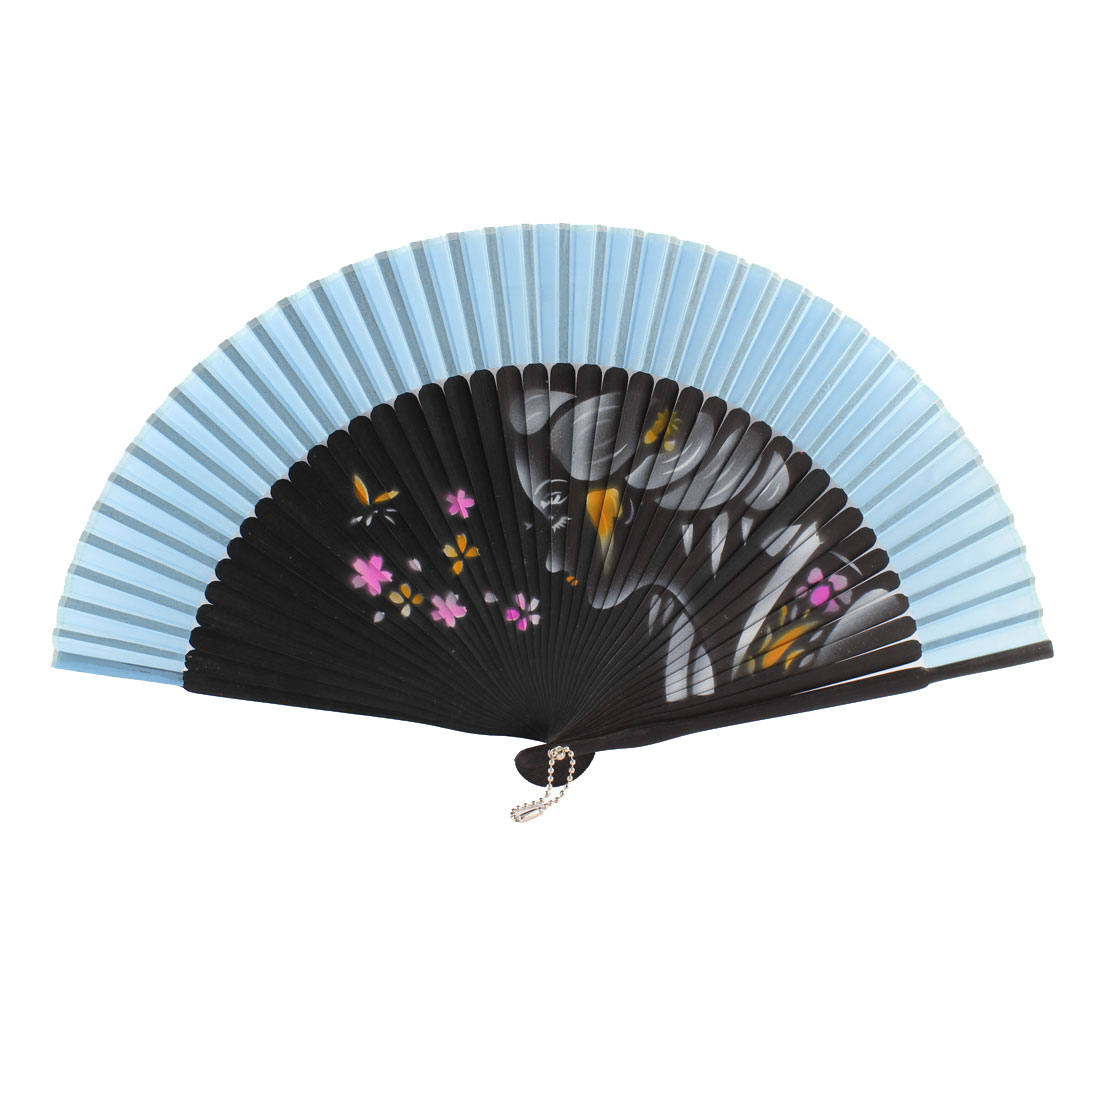 Summer Wedding Dancing Party Girl Flower Pattern Nylon Bamboo Rib Folded Hand Fan Gift Decoration Blue Black